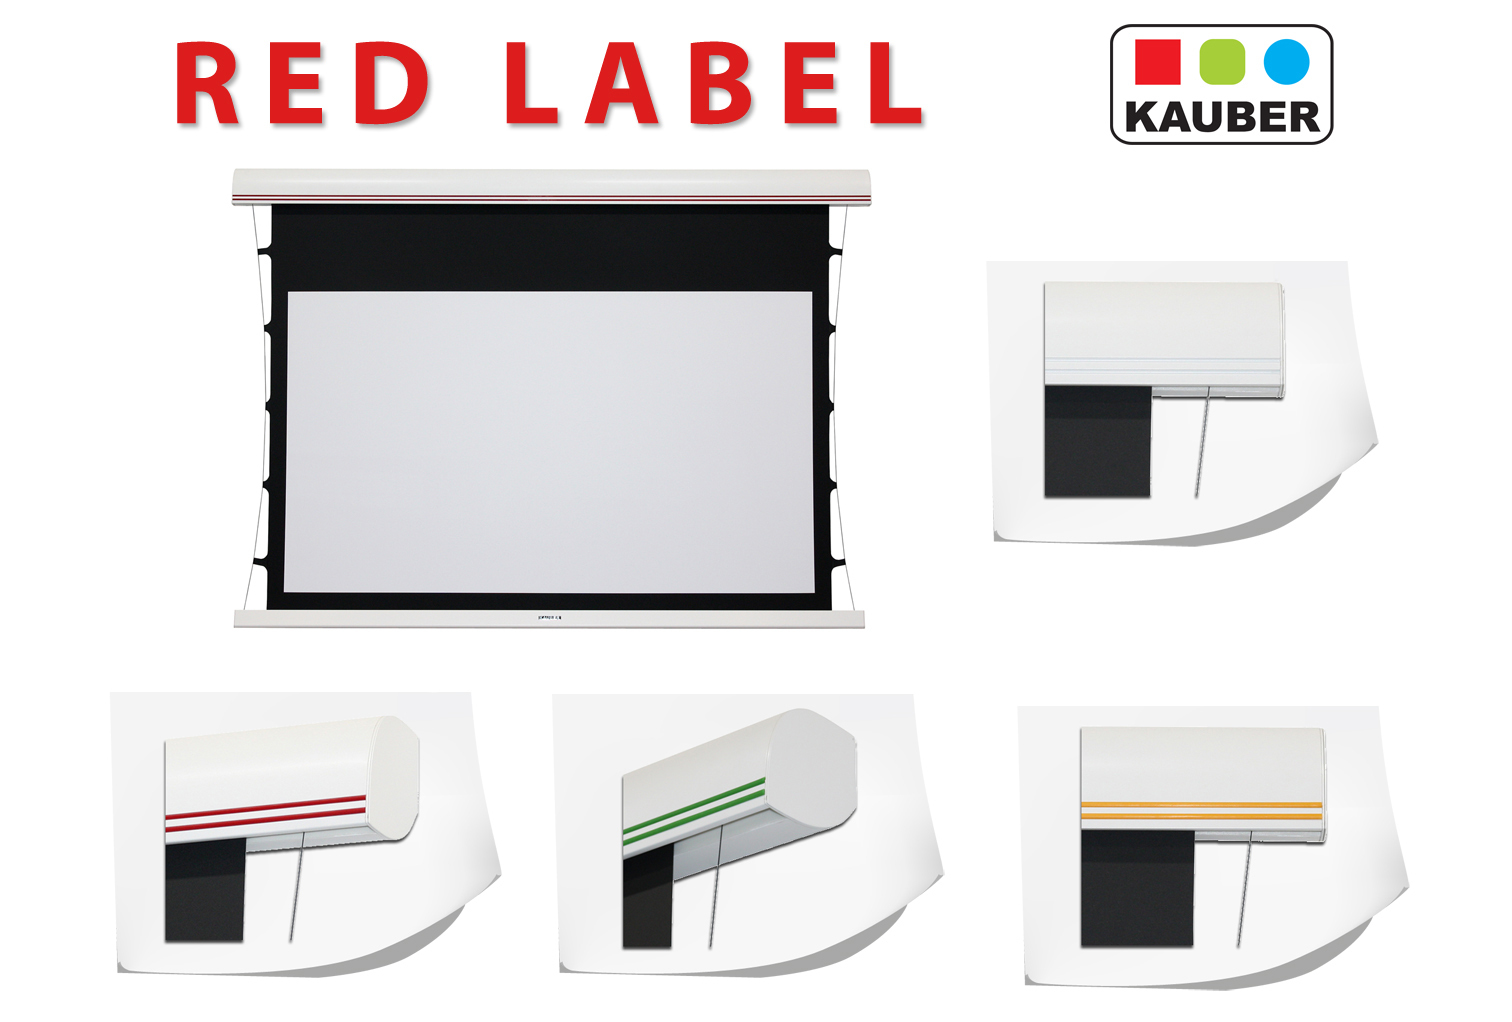 Kauber_Red_Label_Motorleinwaende